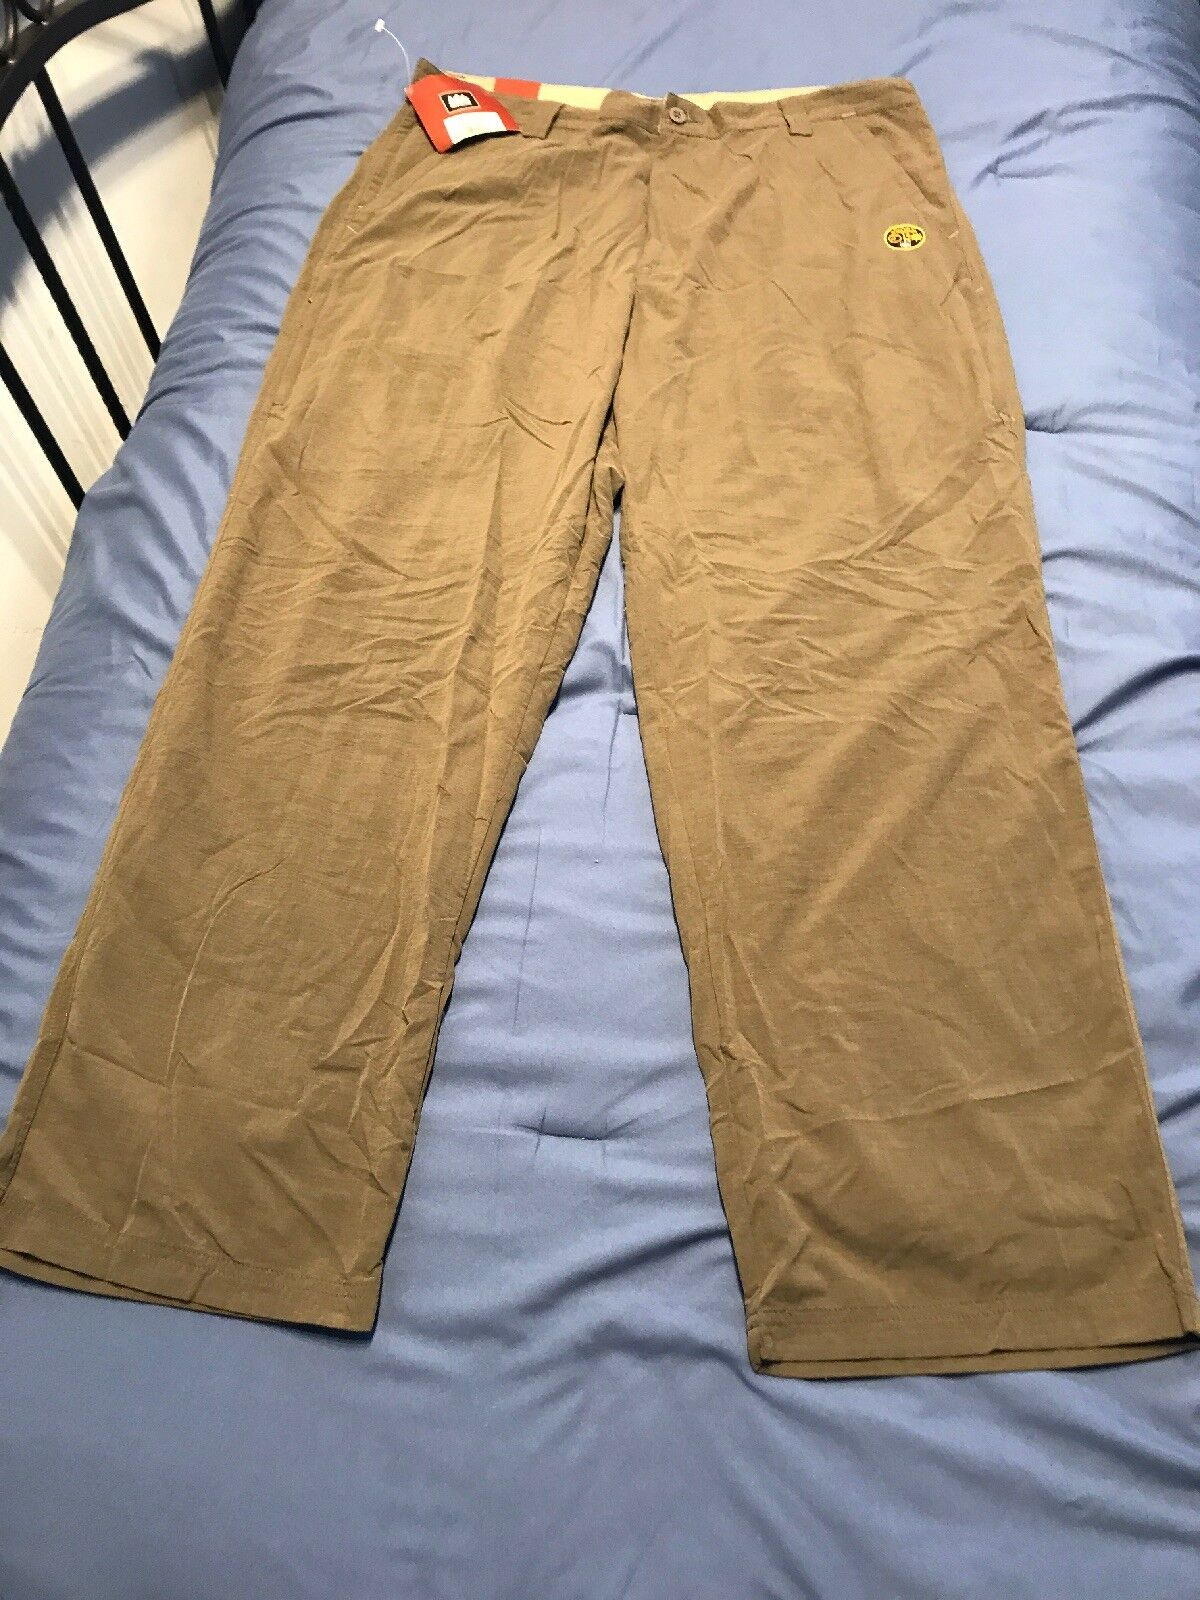 NWT REI Mens UPF 40+ Hiking Camping Pants Outdoor Olive Green Size 38x32 SC8